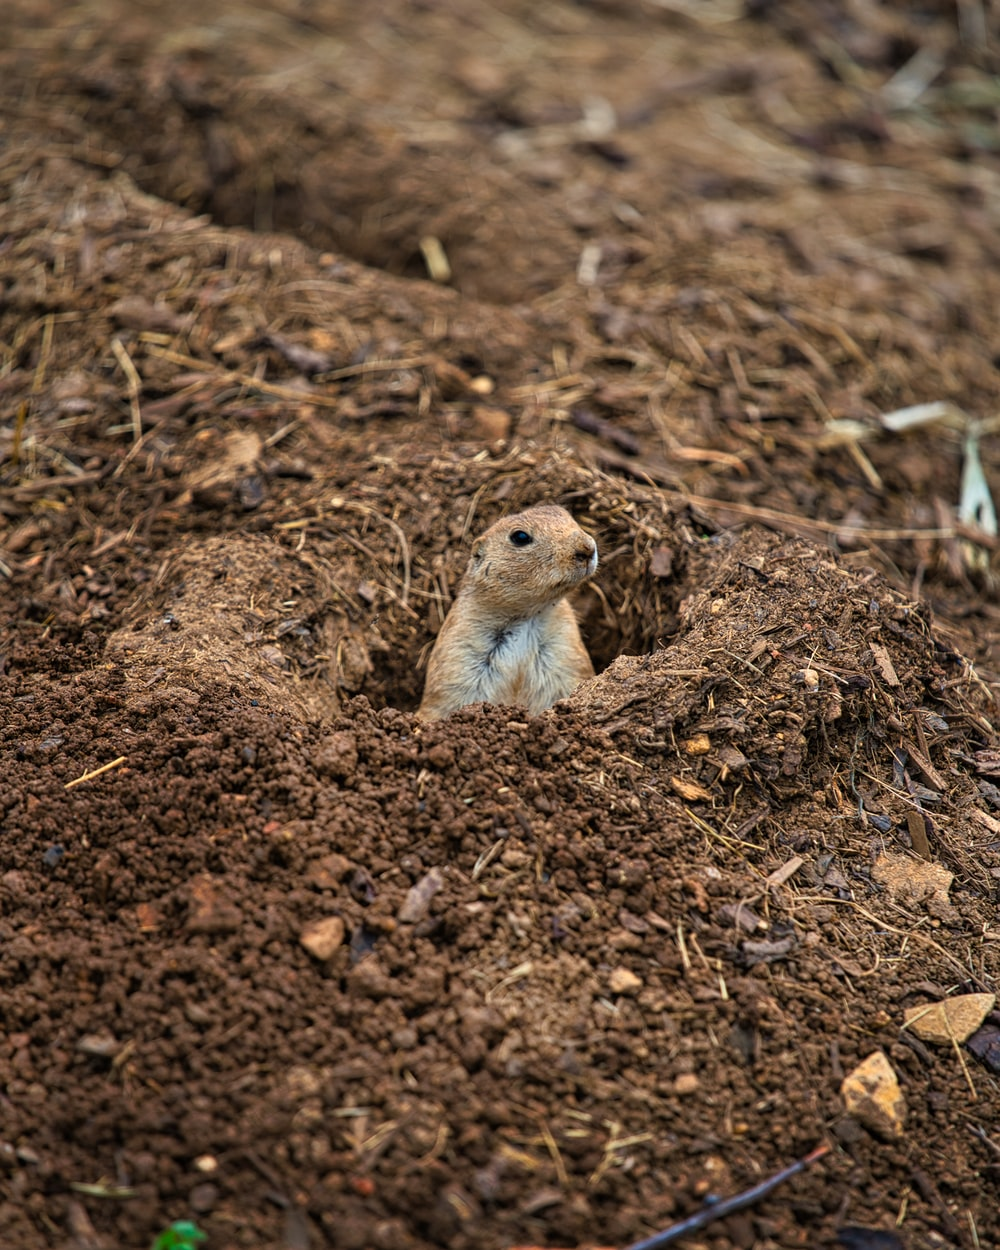 brown rodent on brown soil during daytime